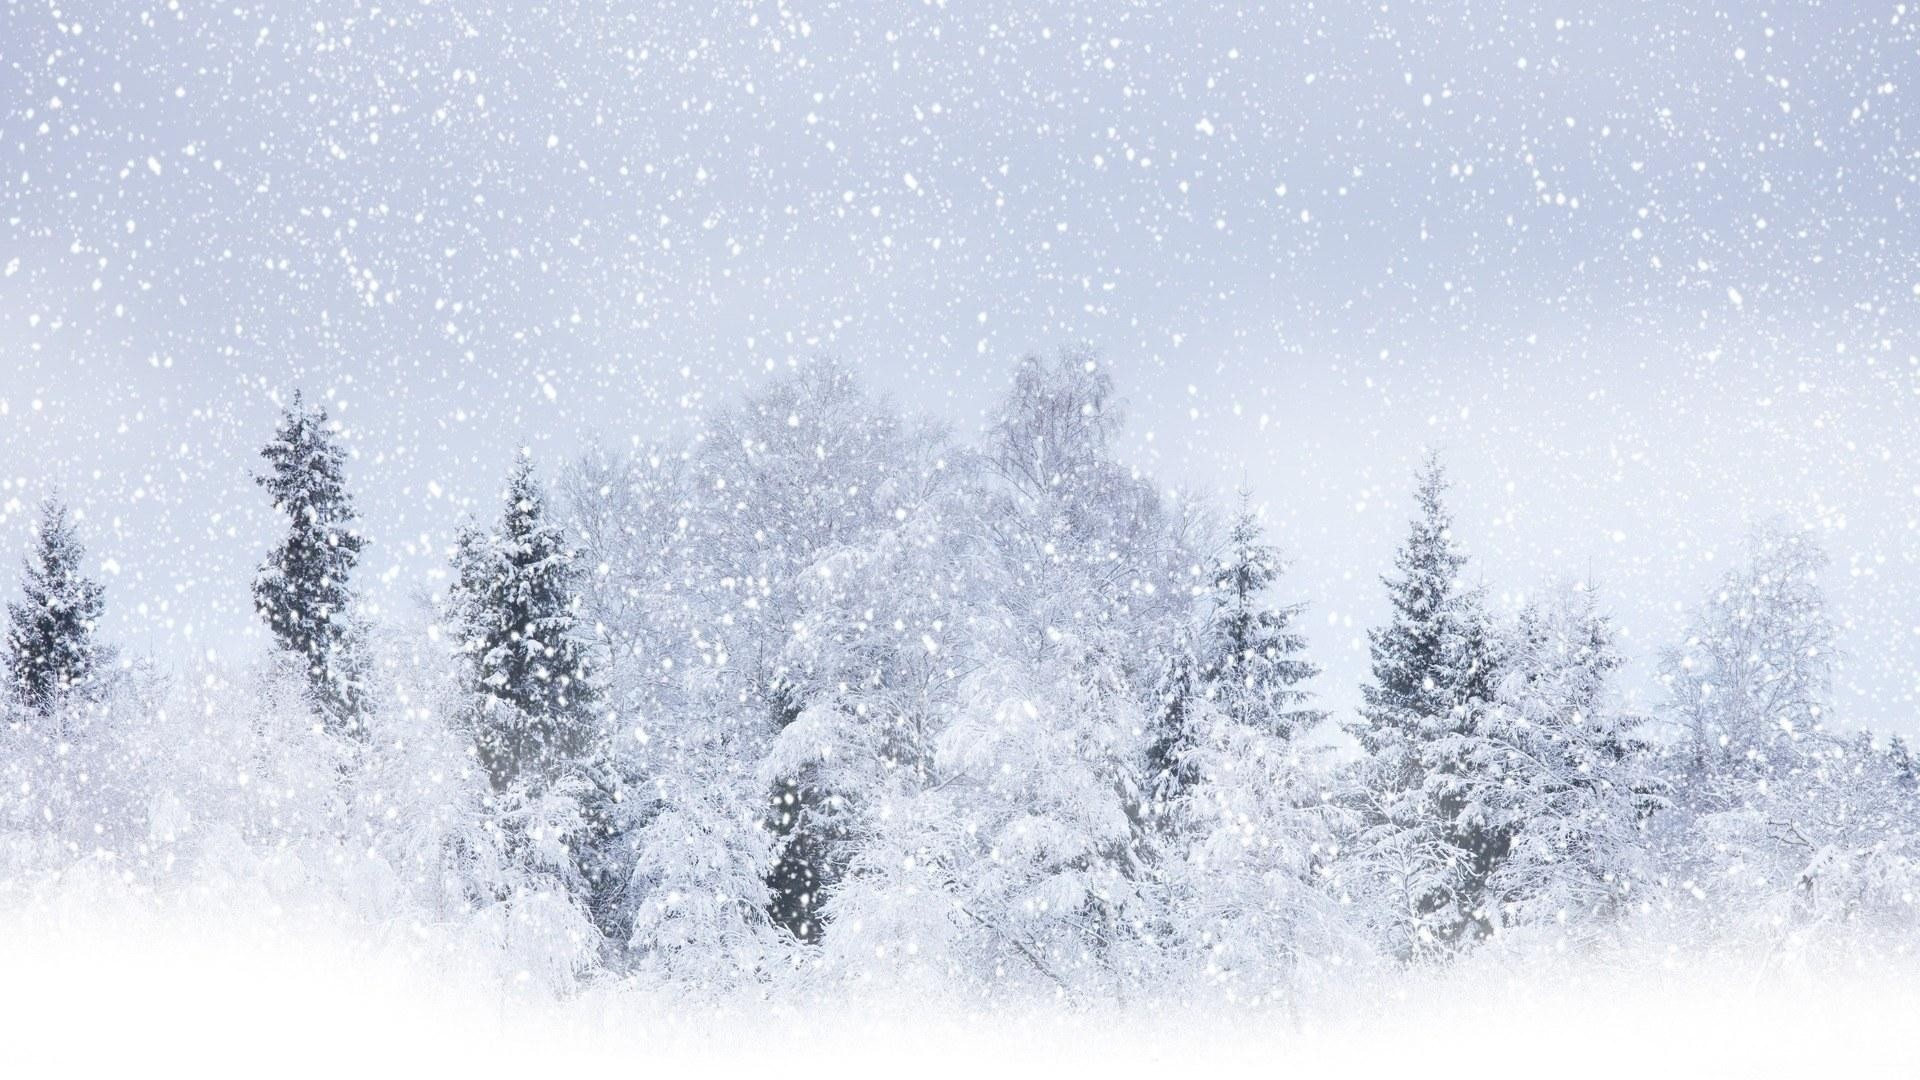 snow storm wallpaper ·①